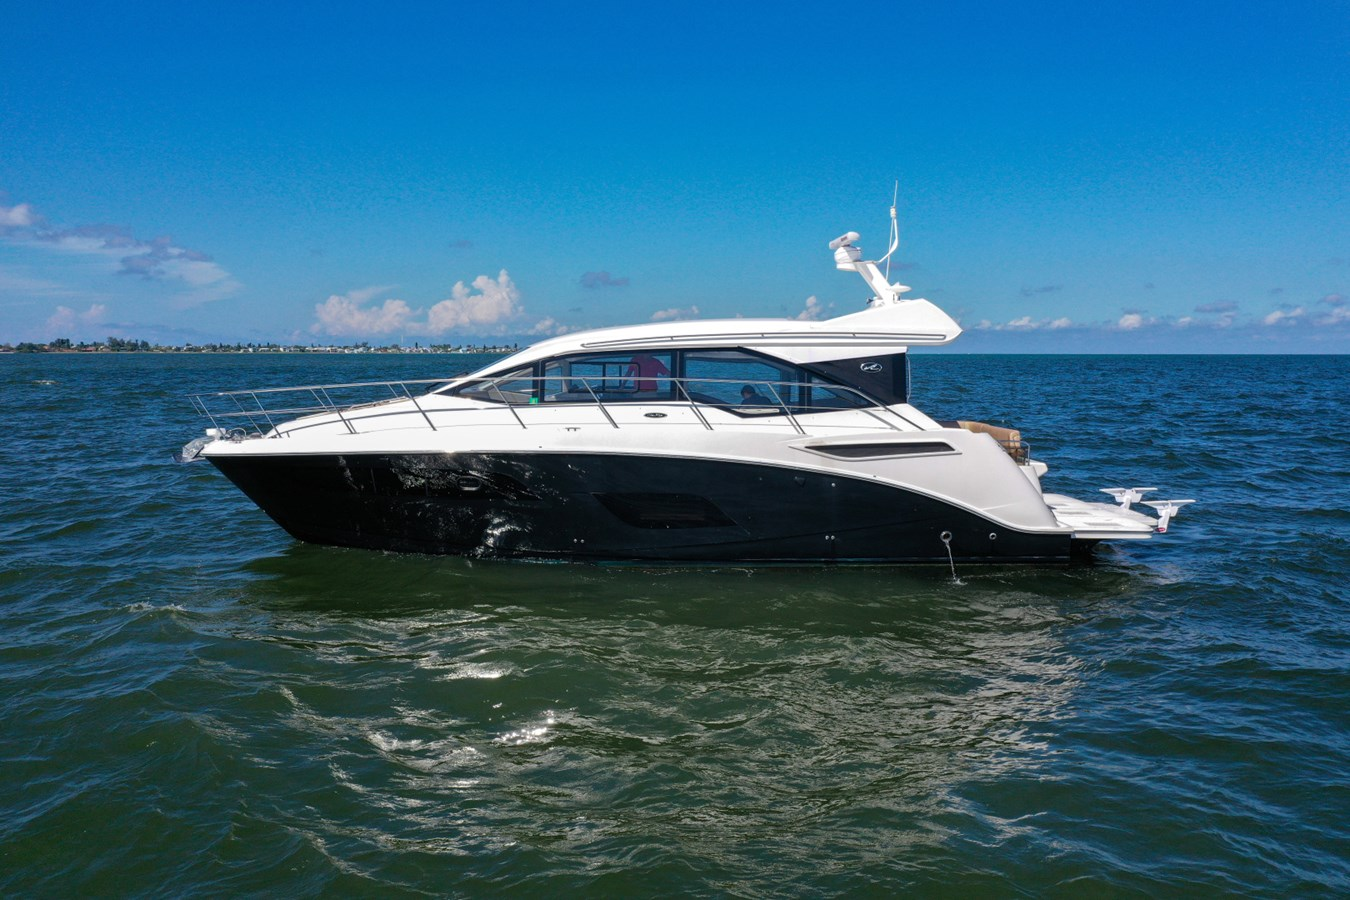 2017 46 Sea Ray Sundancer  2017 SEA RAY 46 Sundancer Cruiser 2698865